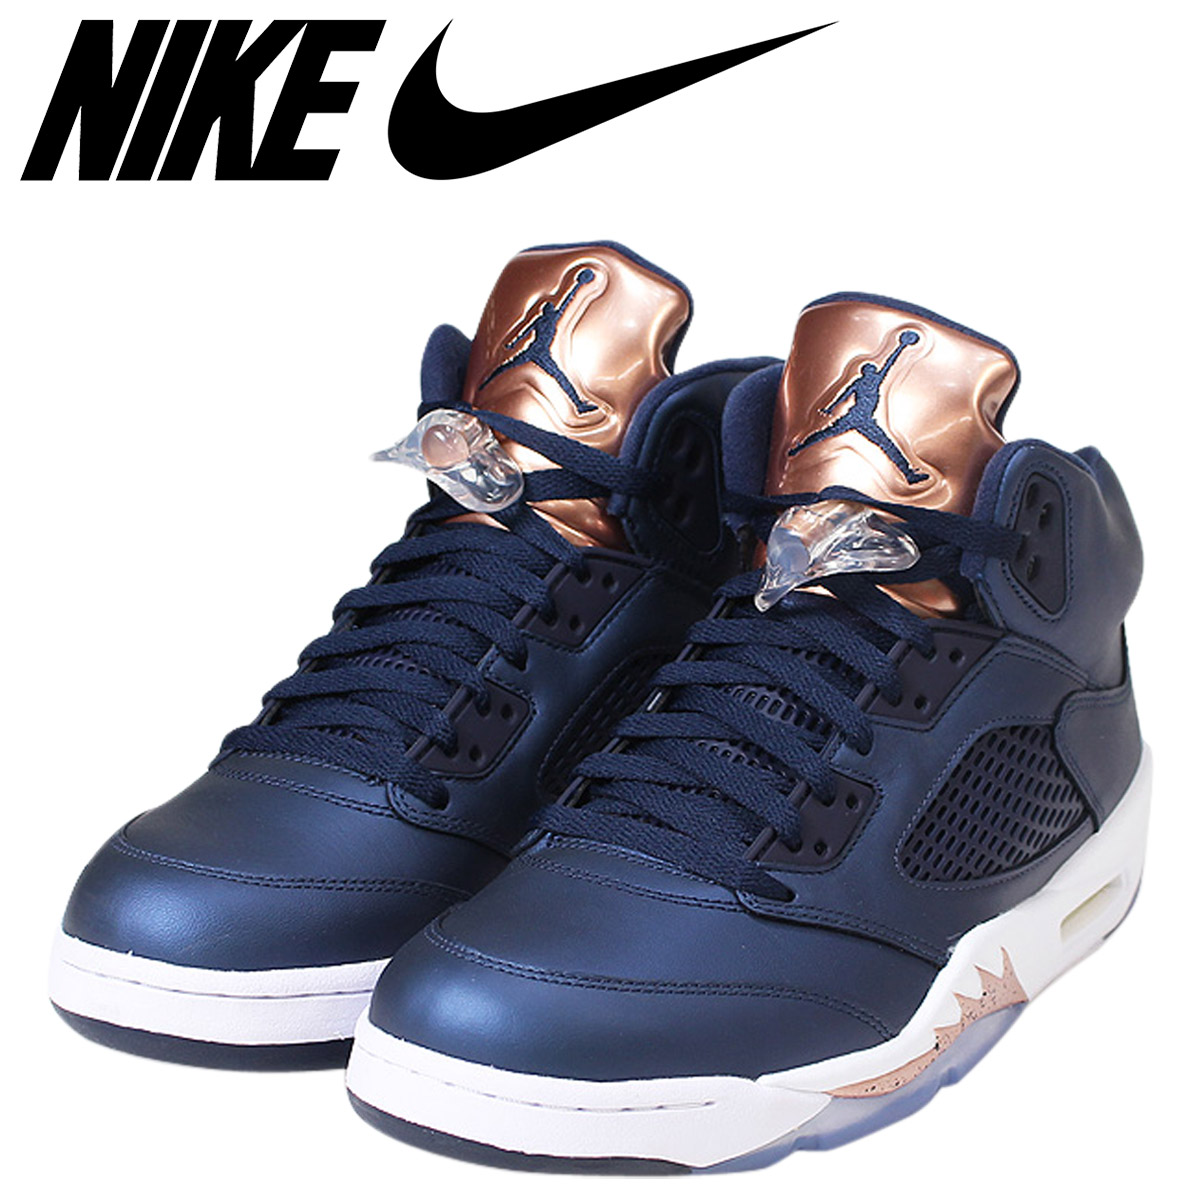 Whats up Sports  Nike NIKE Air Jordan 5 nostalgic sneakers AIR JORDAN 5  RETRO BRONZE men 136 993b4d587